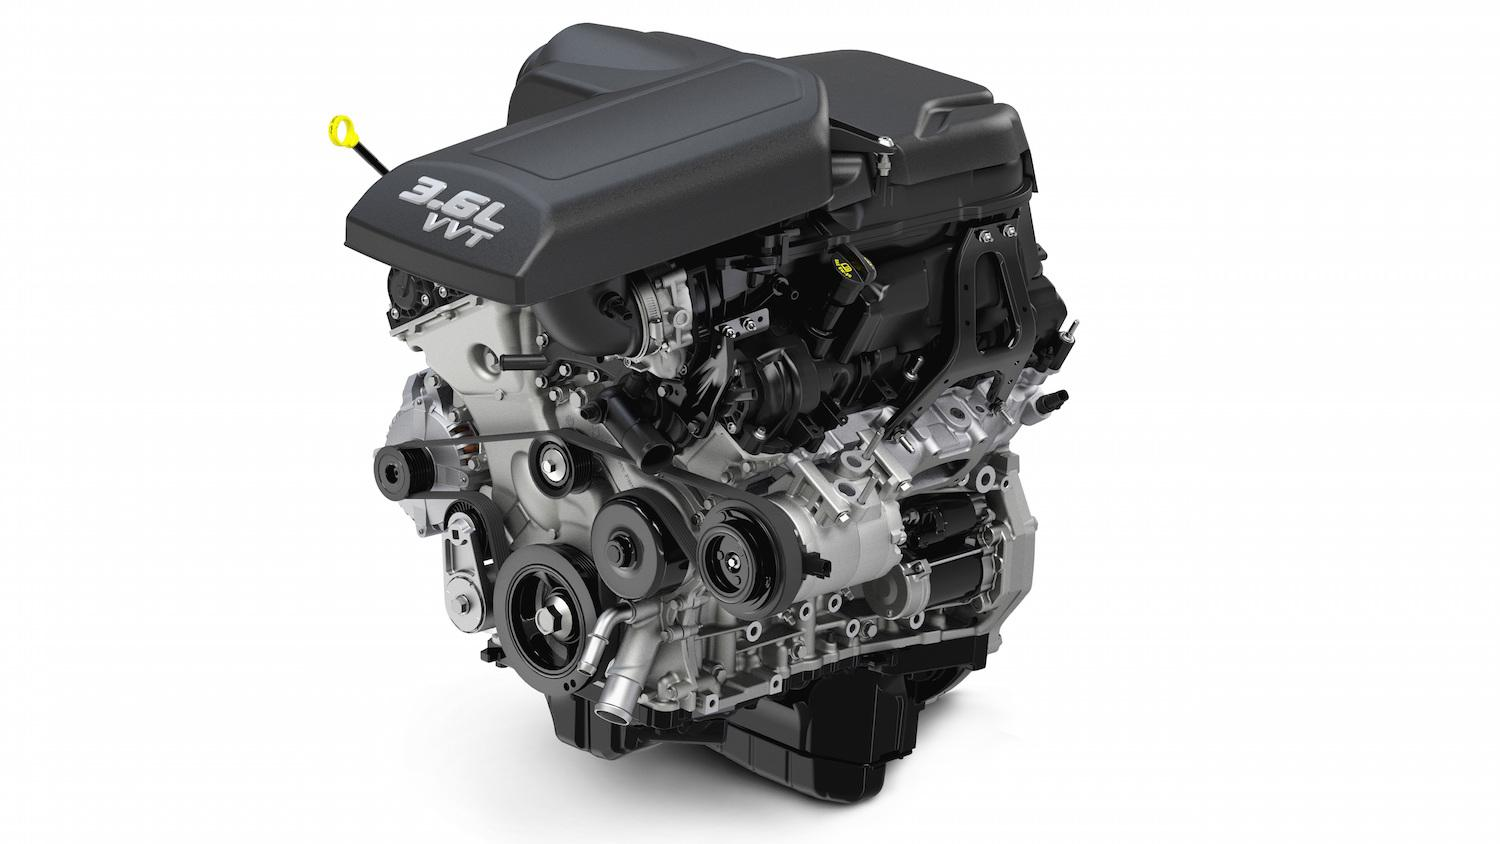 Chrysler Pentastar V6 to get turbocharging, direct ...